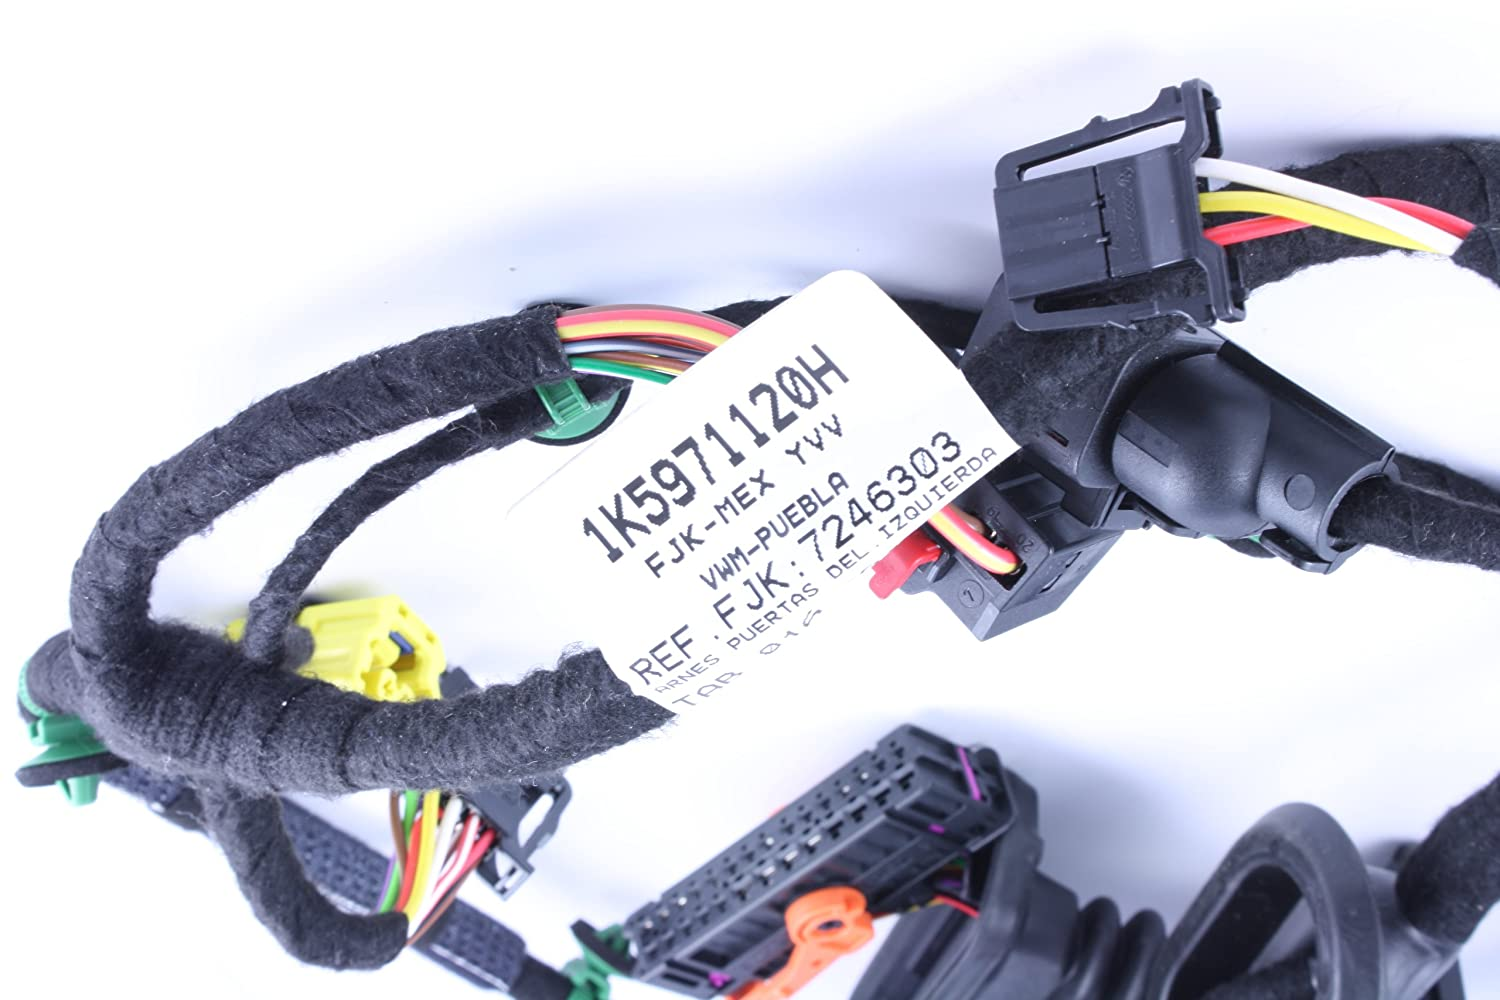 81bTmGhLQAL._SL1500_ amazon com genuine volkswagen drivers side door harness 1k5 971 2006 vw jetta door wiring harness recall at aneh.co